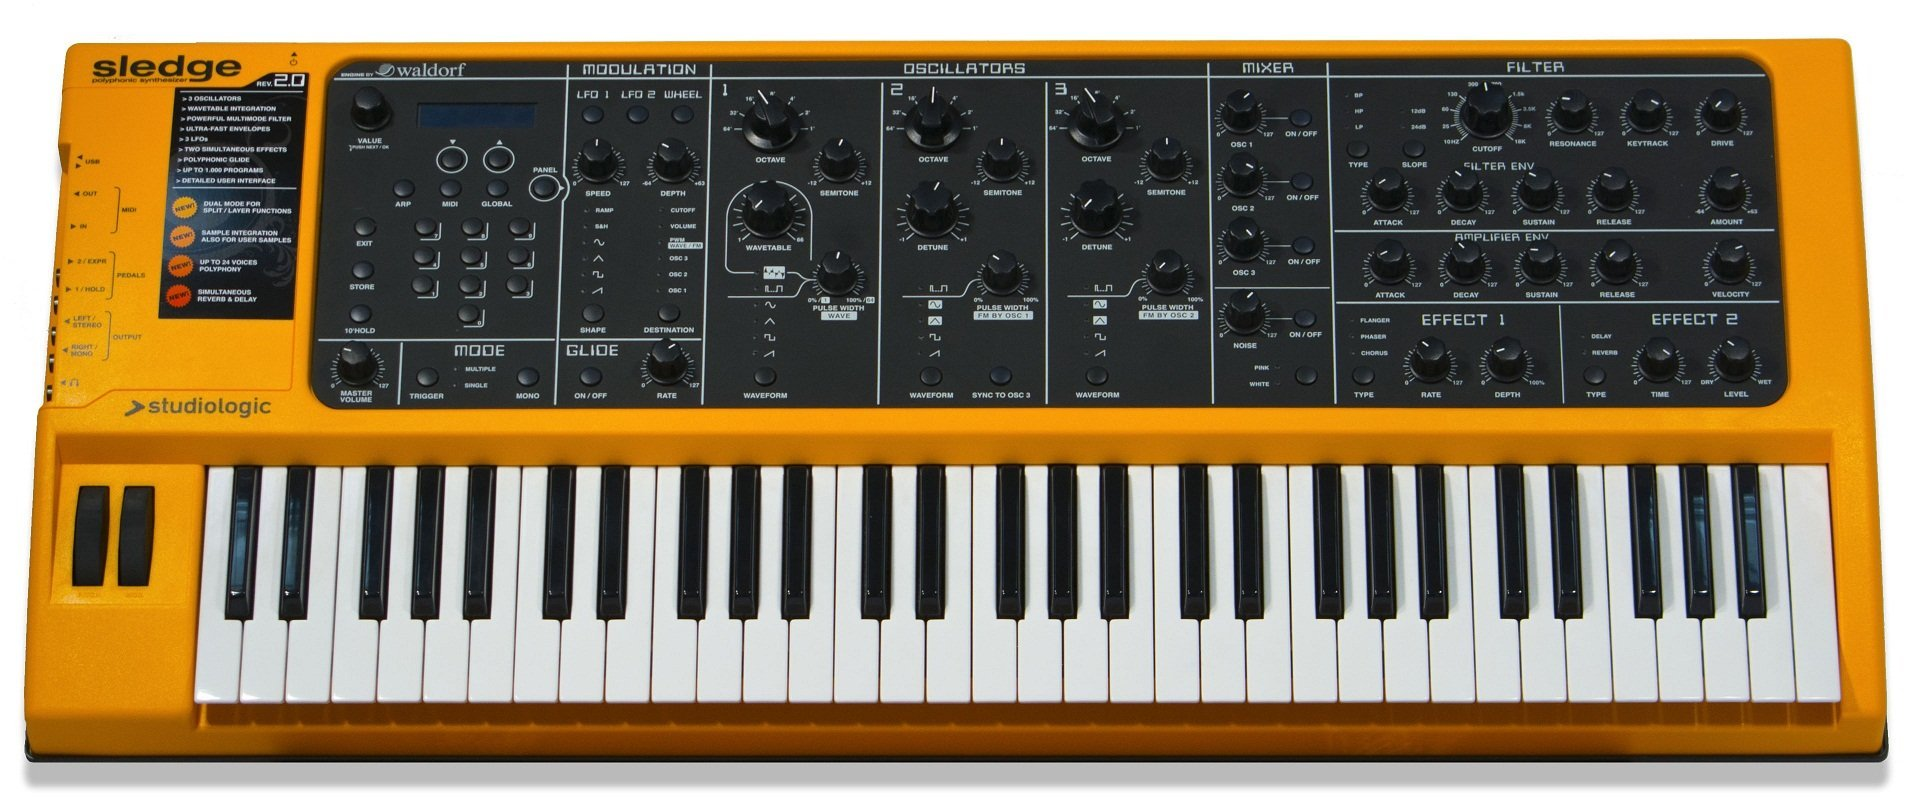 Studiologic Sledge 2.0 61-Key Synthesizer with Aftertouch by Studiologic